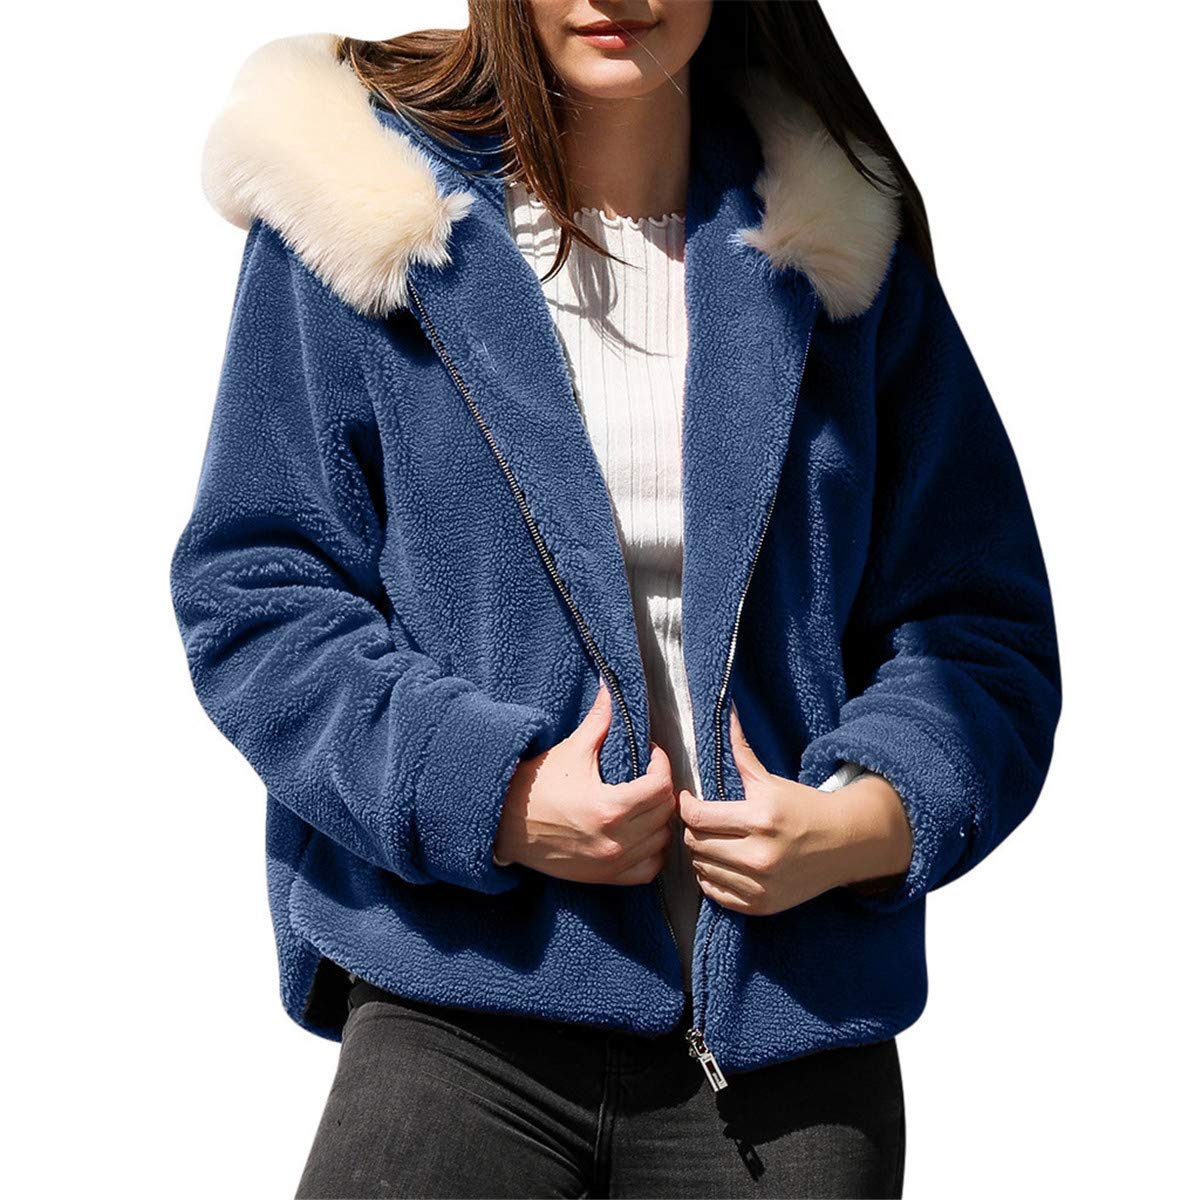 Thenxin Womens Warm Fuzzy Fleece Hooded Coat Long Sleeve Zipper Autumn Winter Jacket Outwear(Blue,XL) by Thenxin